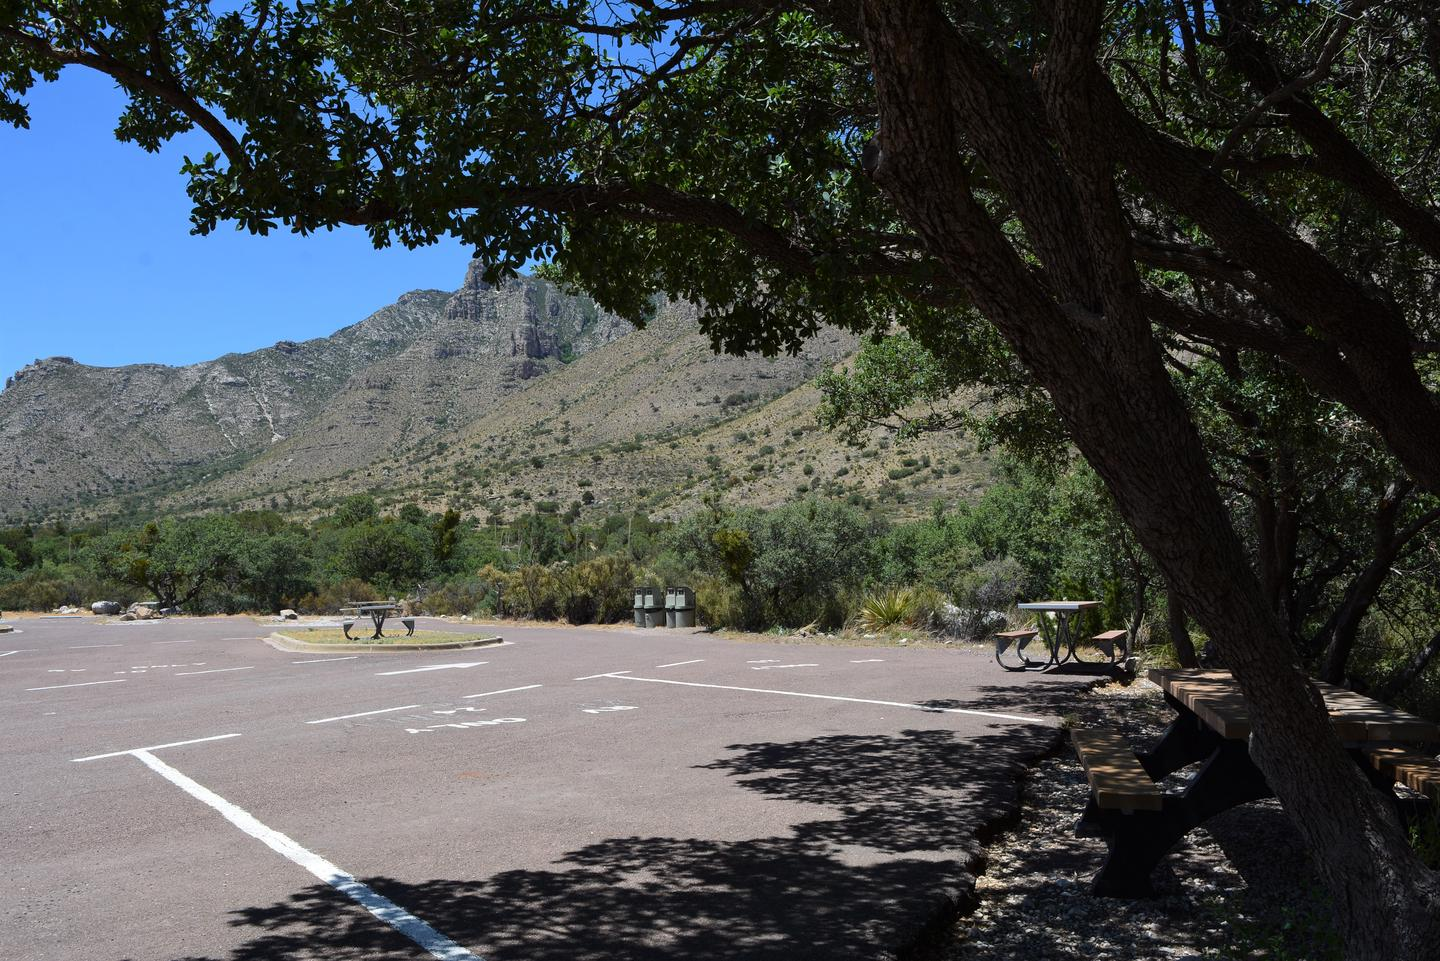 RV campsite 24 shown from the back edge of the site.  Trees provide some shade in the earlier times of the day.  Picnic table is just to edge of pavement. RV campsite 24 with some shade a picnic table and views of the mountains.